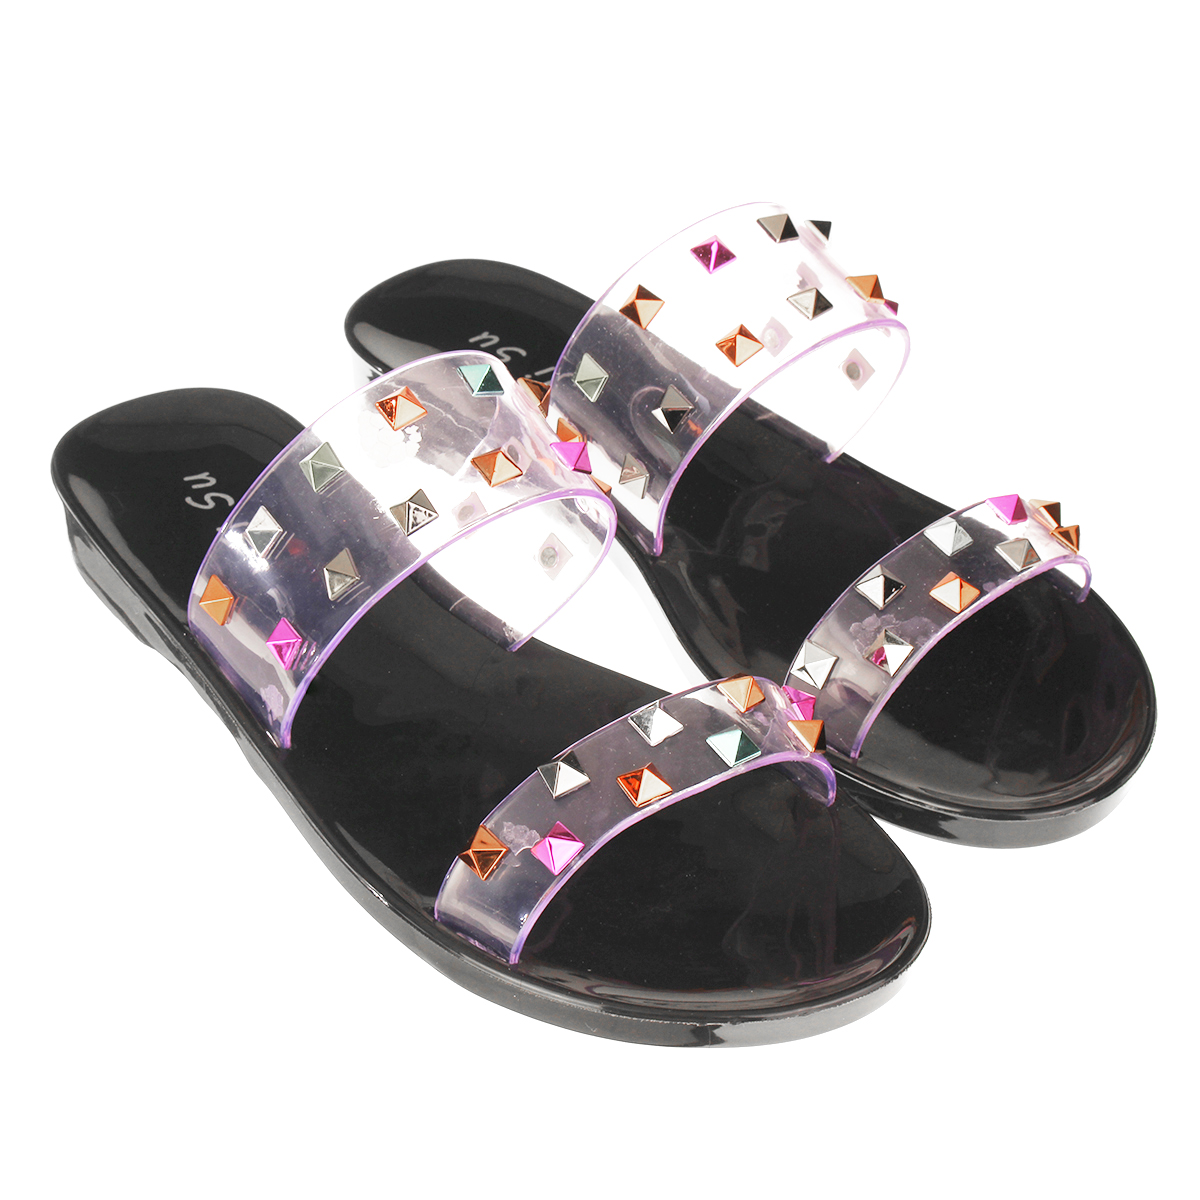 Moonker Girls Summer Sandals Slides Women High-Heel Shoes Casual Single Shoes Wild Sandals Stiletto Ladies Flip-Flops